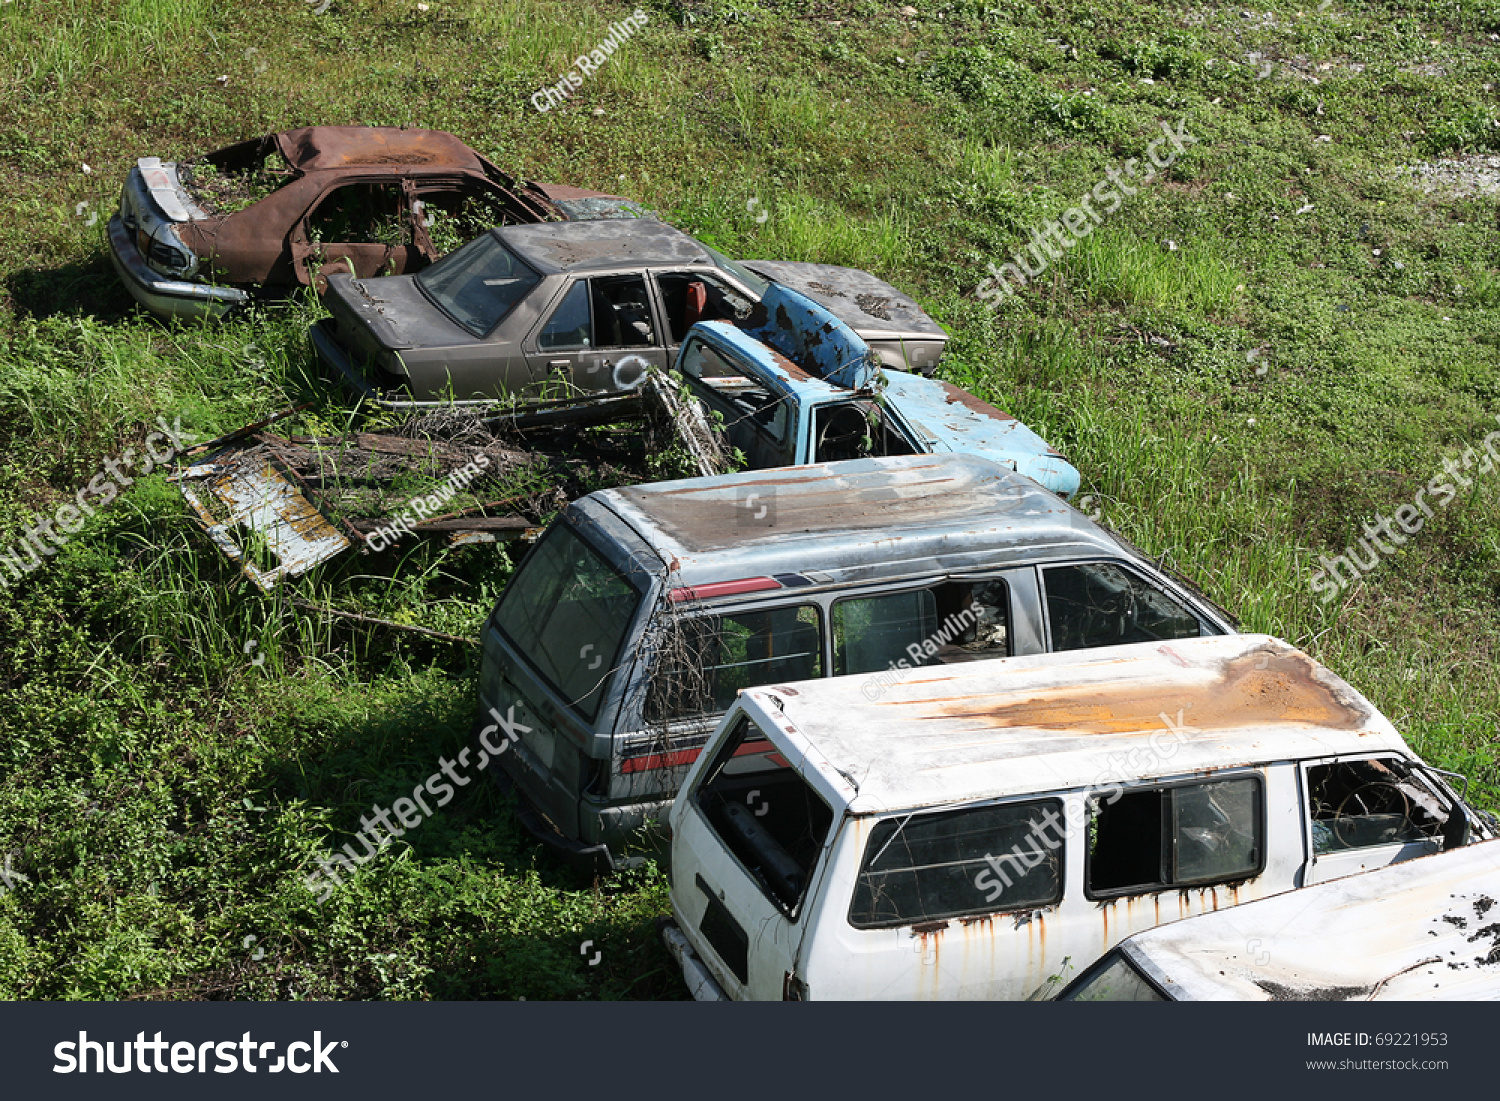 Old Unwanted Cars Vans Rot On Stock Photo 69221953 - Shutterstock